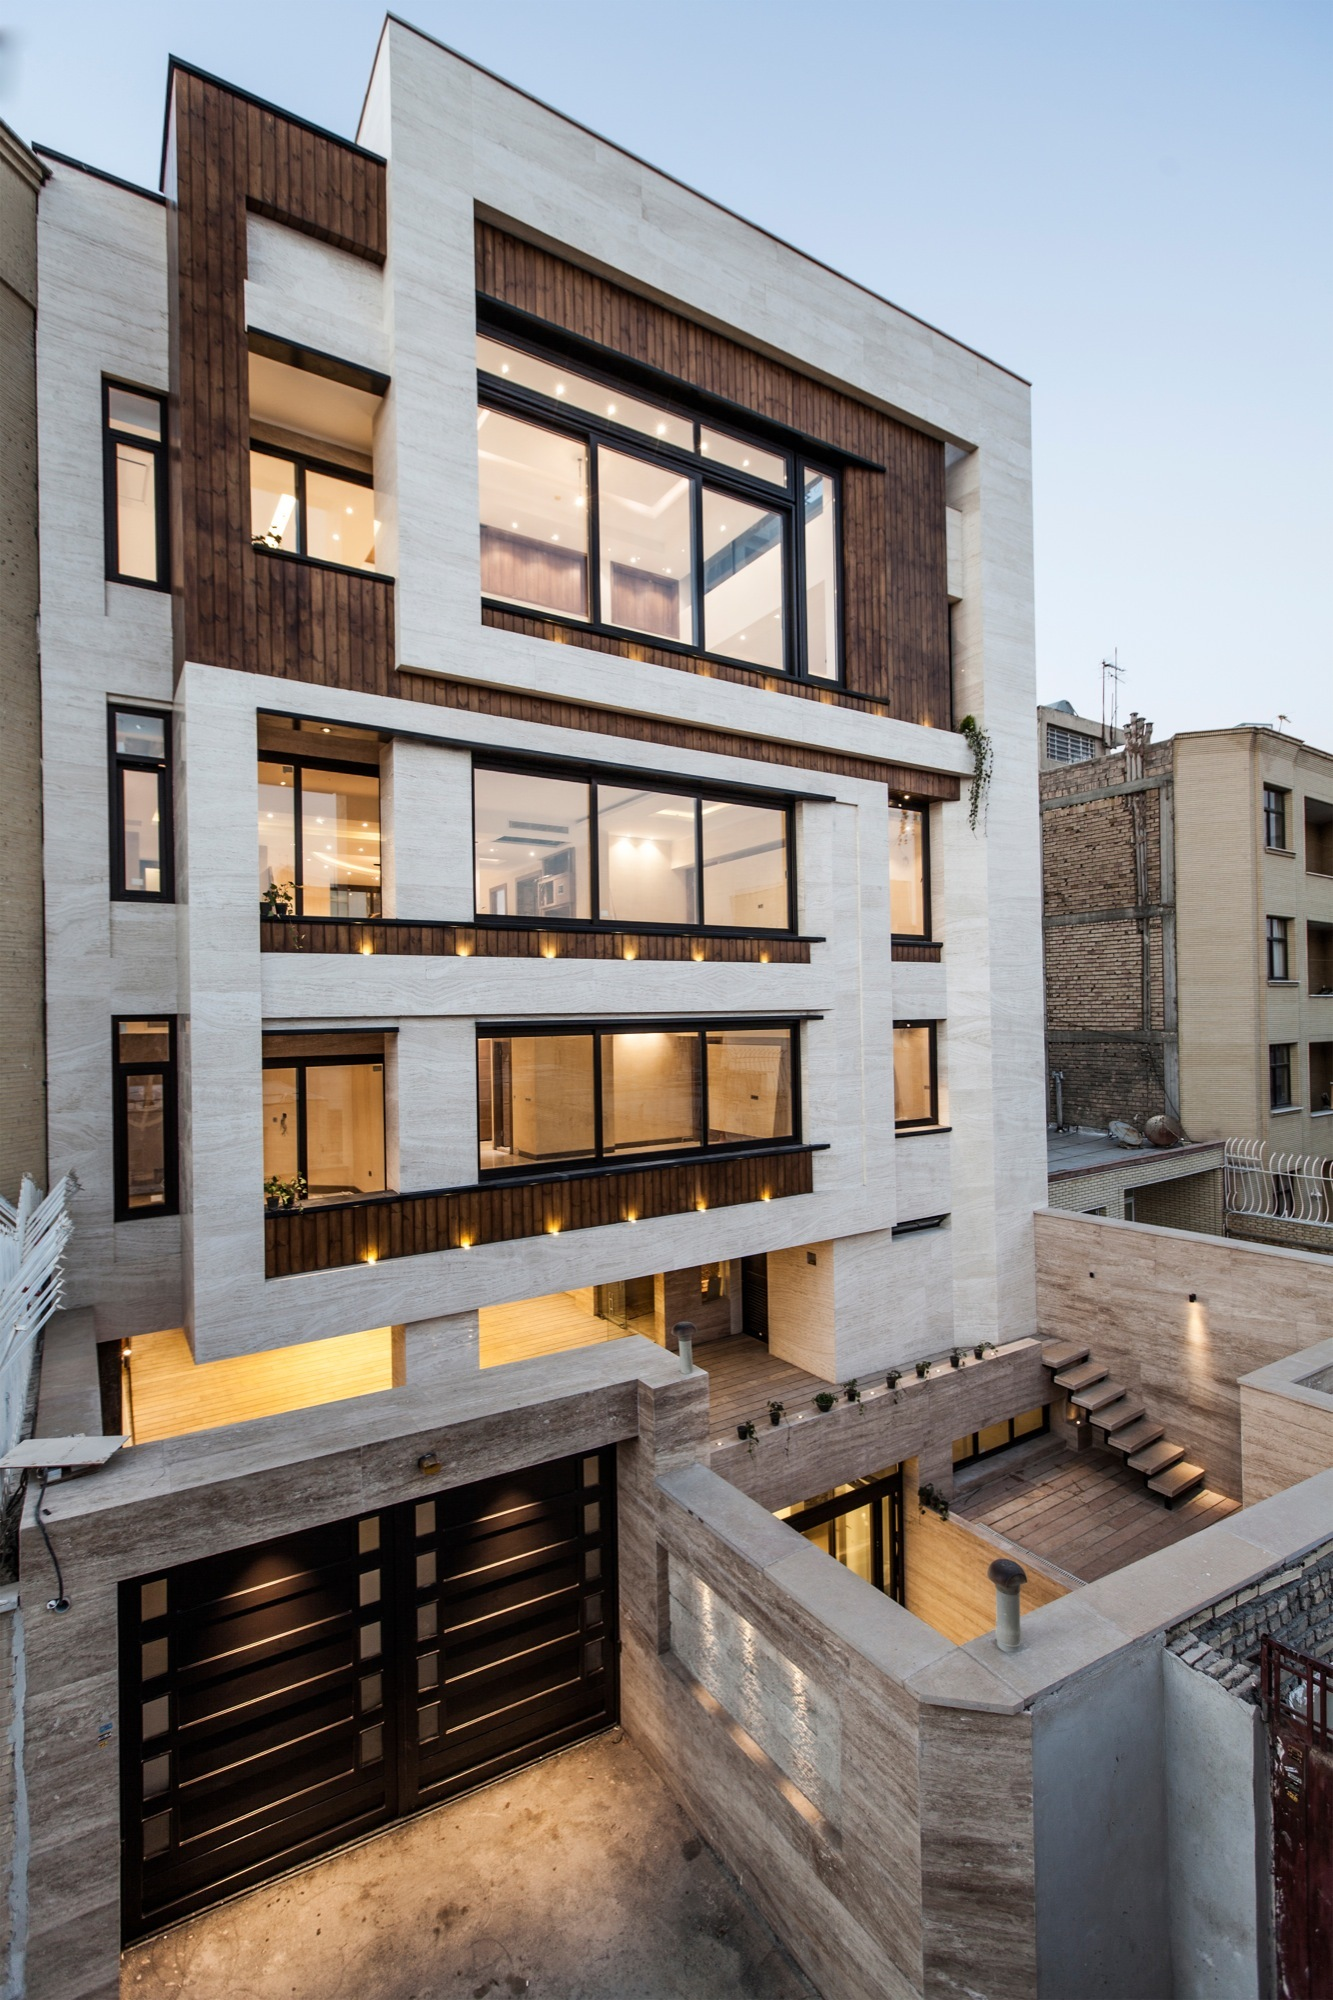 House NO:2 / SarSayeh Architectural Office